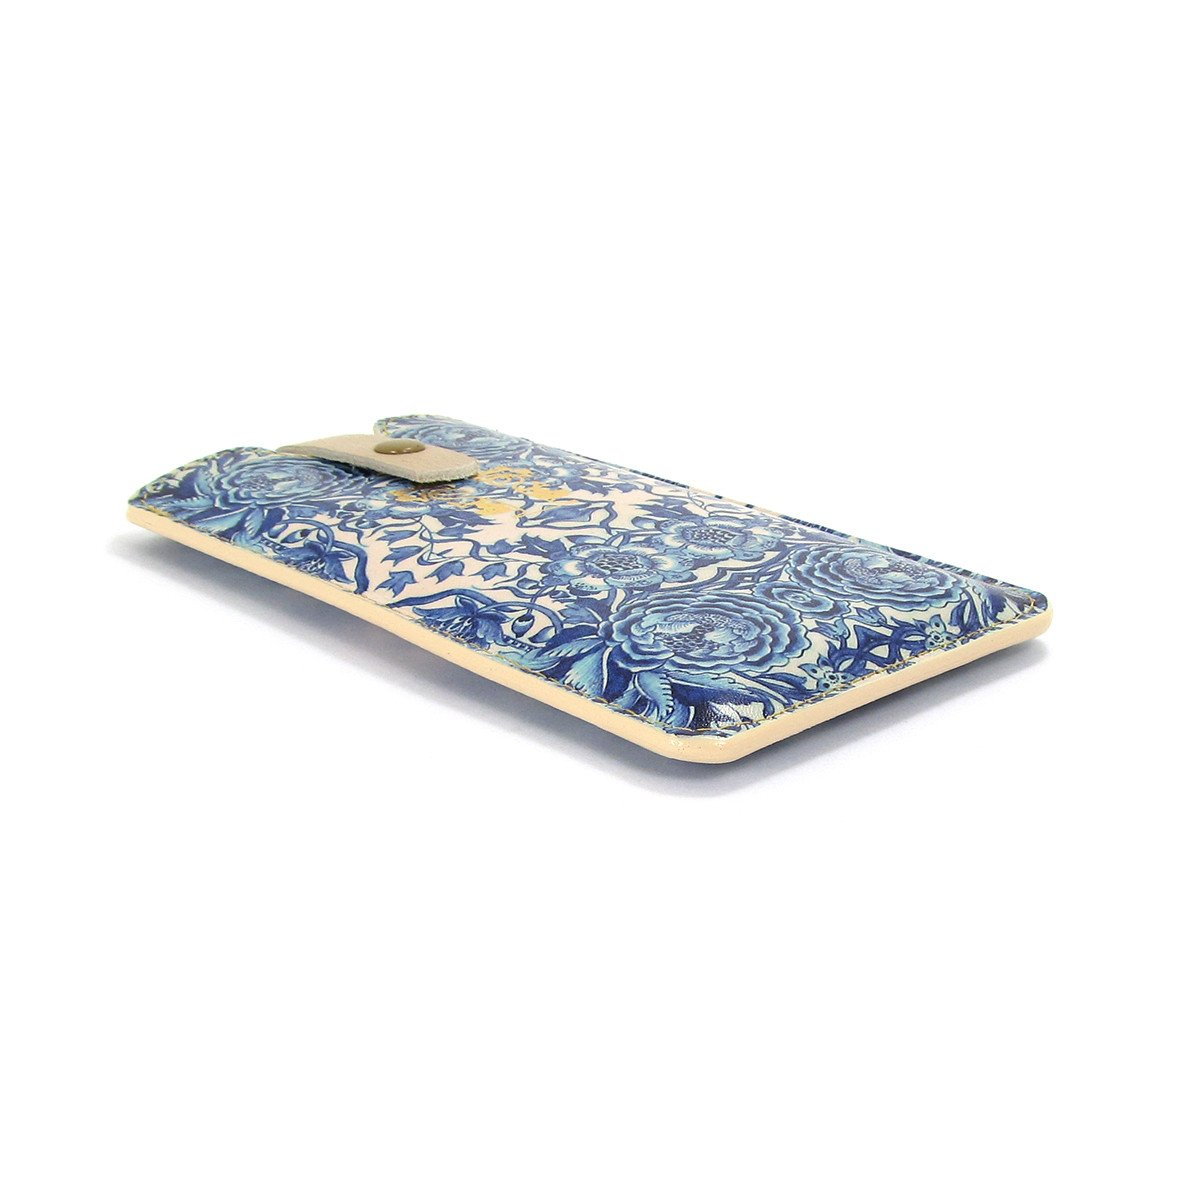 Leather Phone Case  - Blue & White Porcelain - Tovi Sorga  - 5